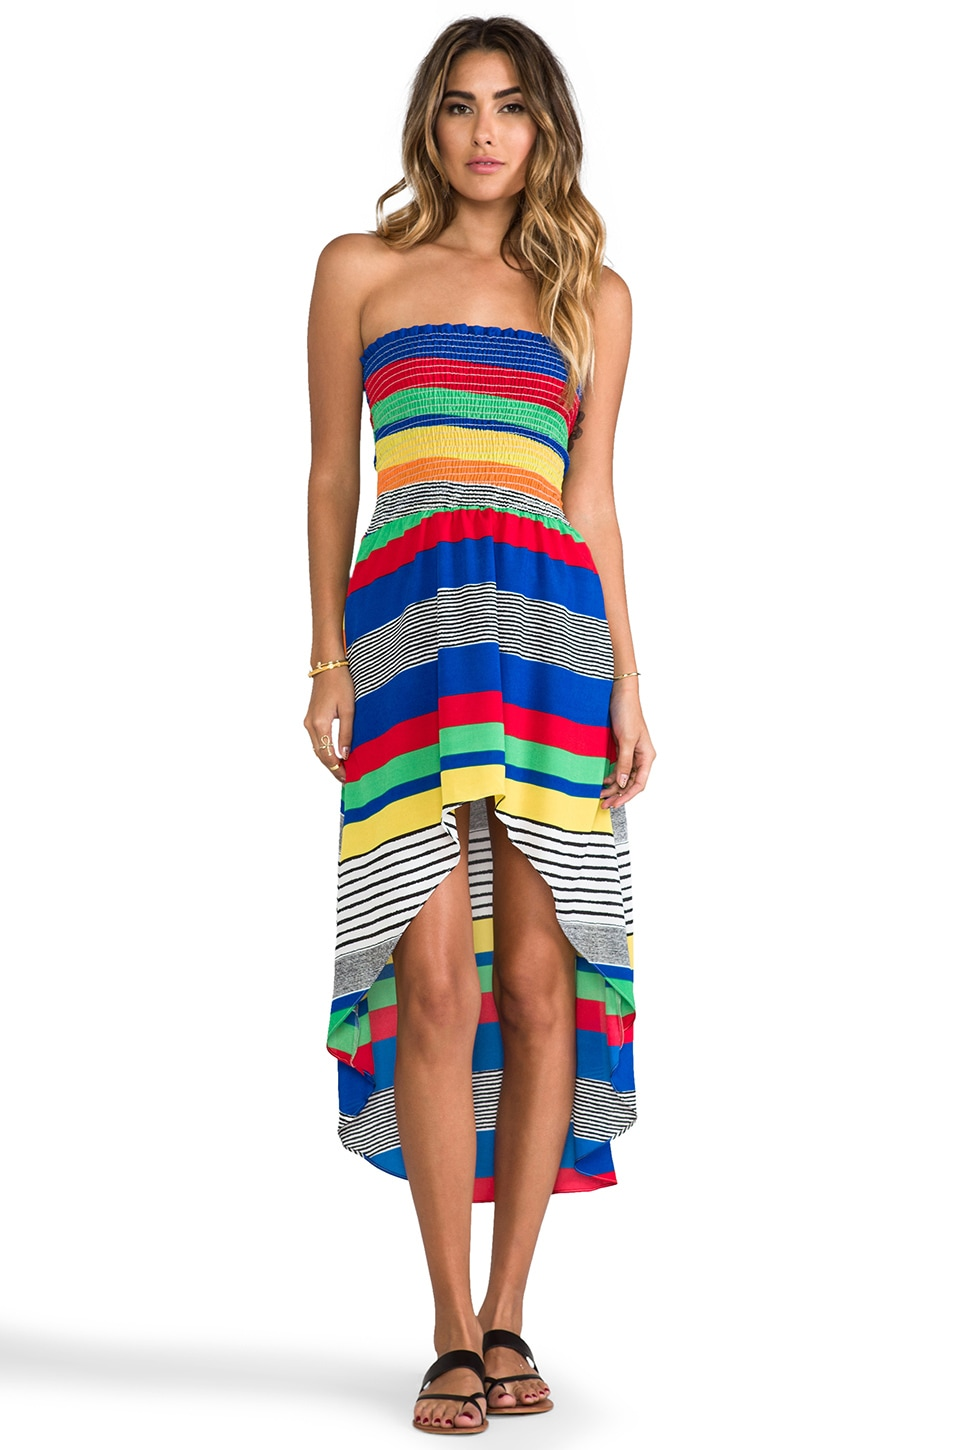 T-Bags LosAngeles Hi-Low Dress in Summer Stripe